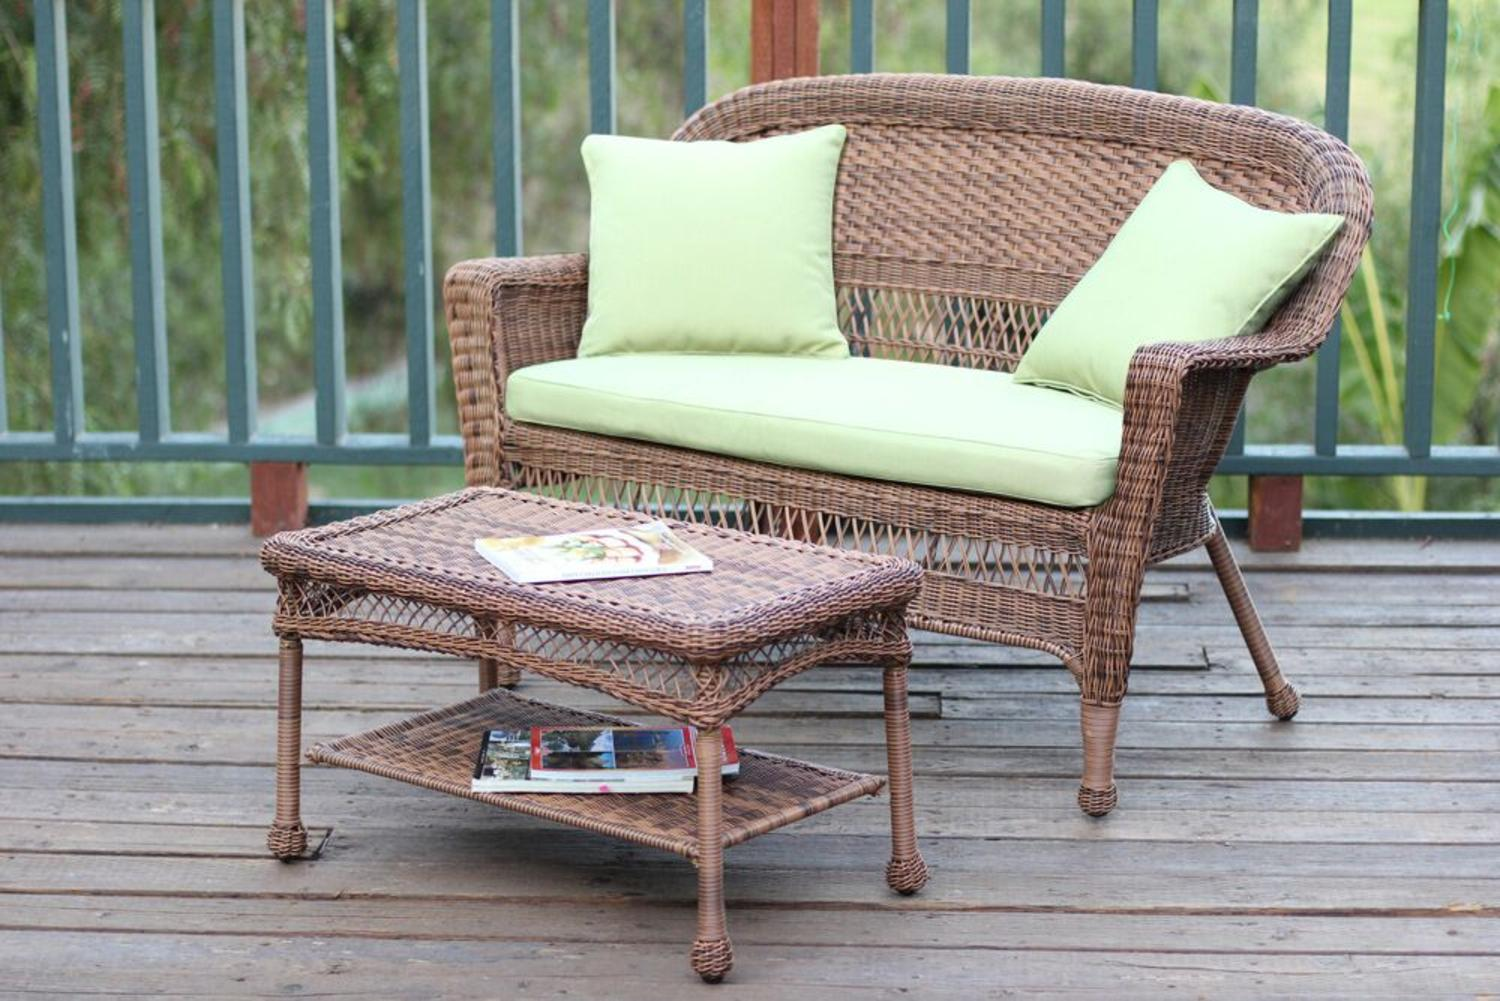 2-Piece Oswald Honey Resin Wicker Patio Loveseat & Coffee Table Set Green Cushion by CC Outdoor Living